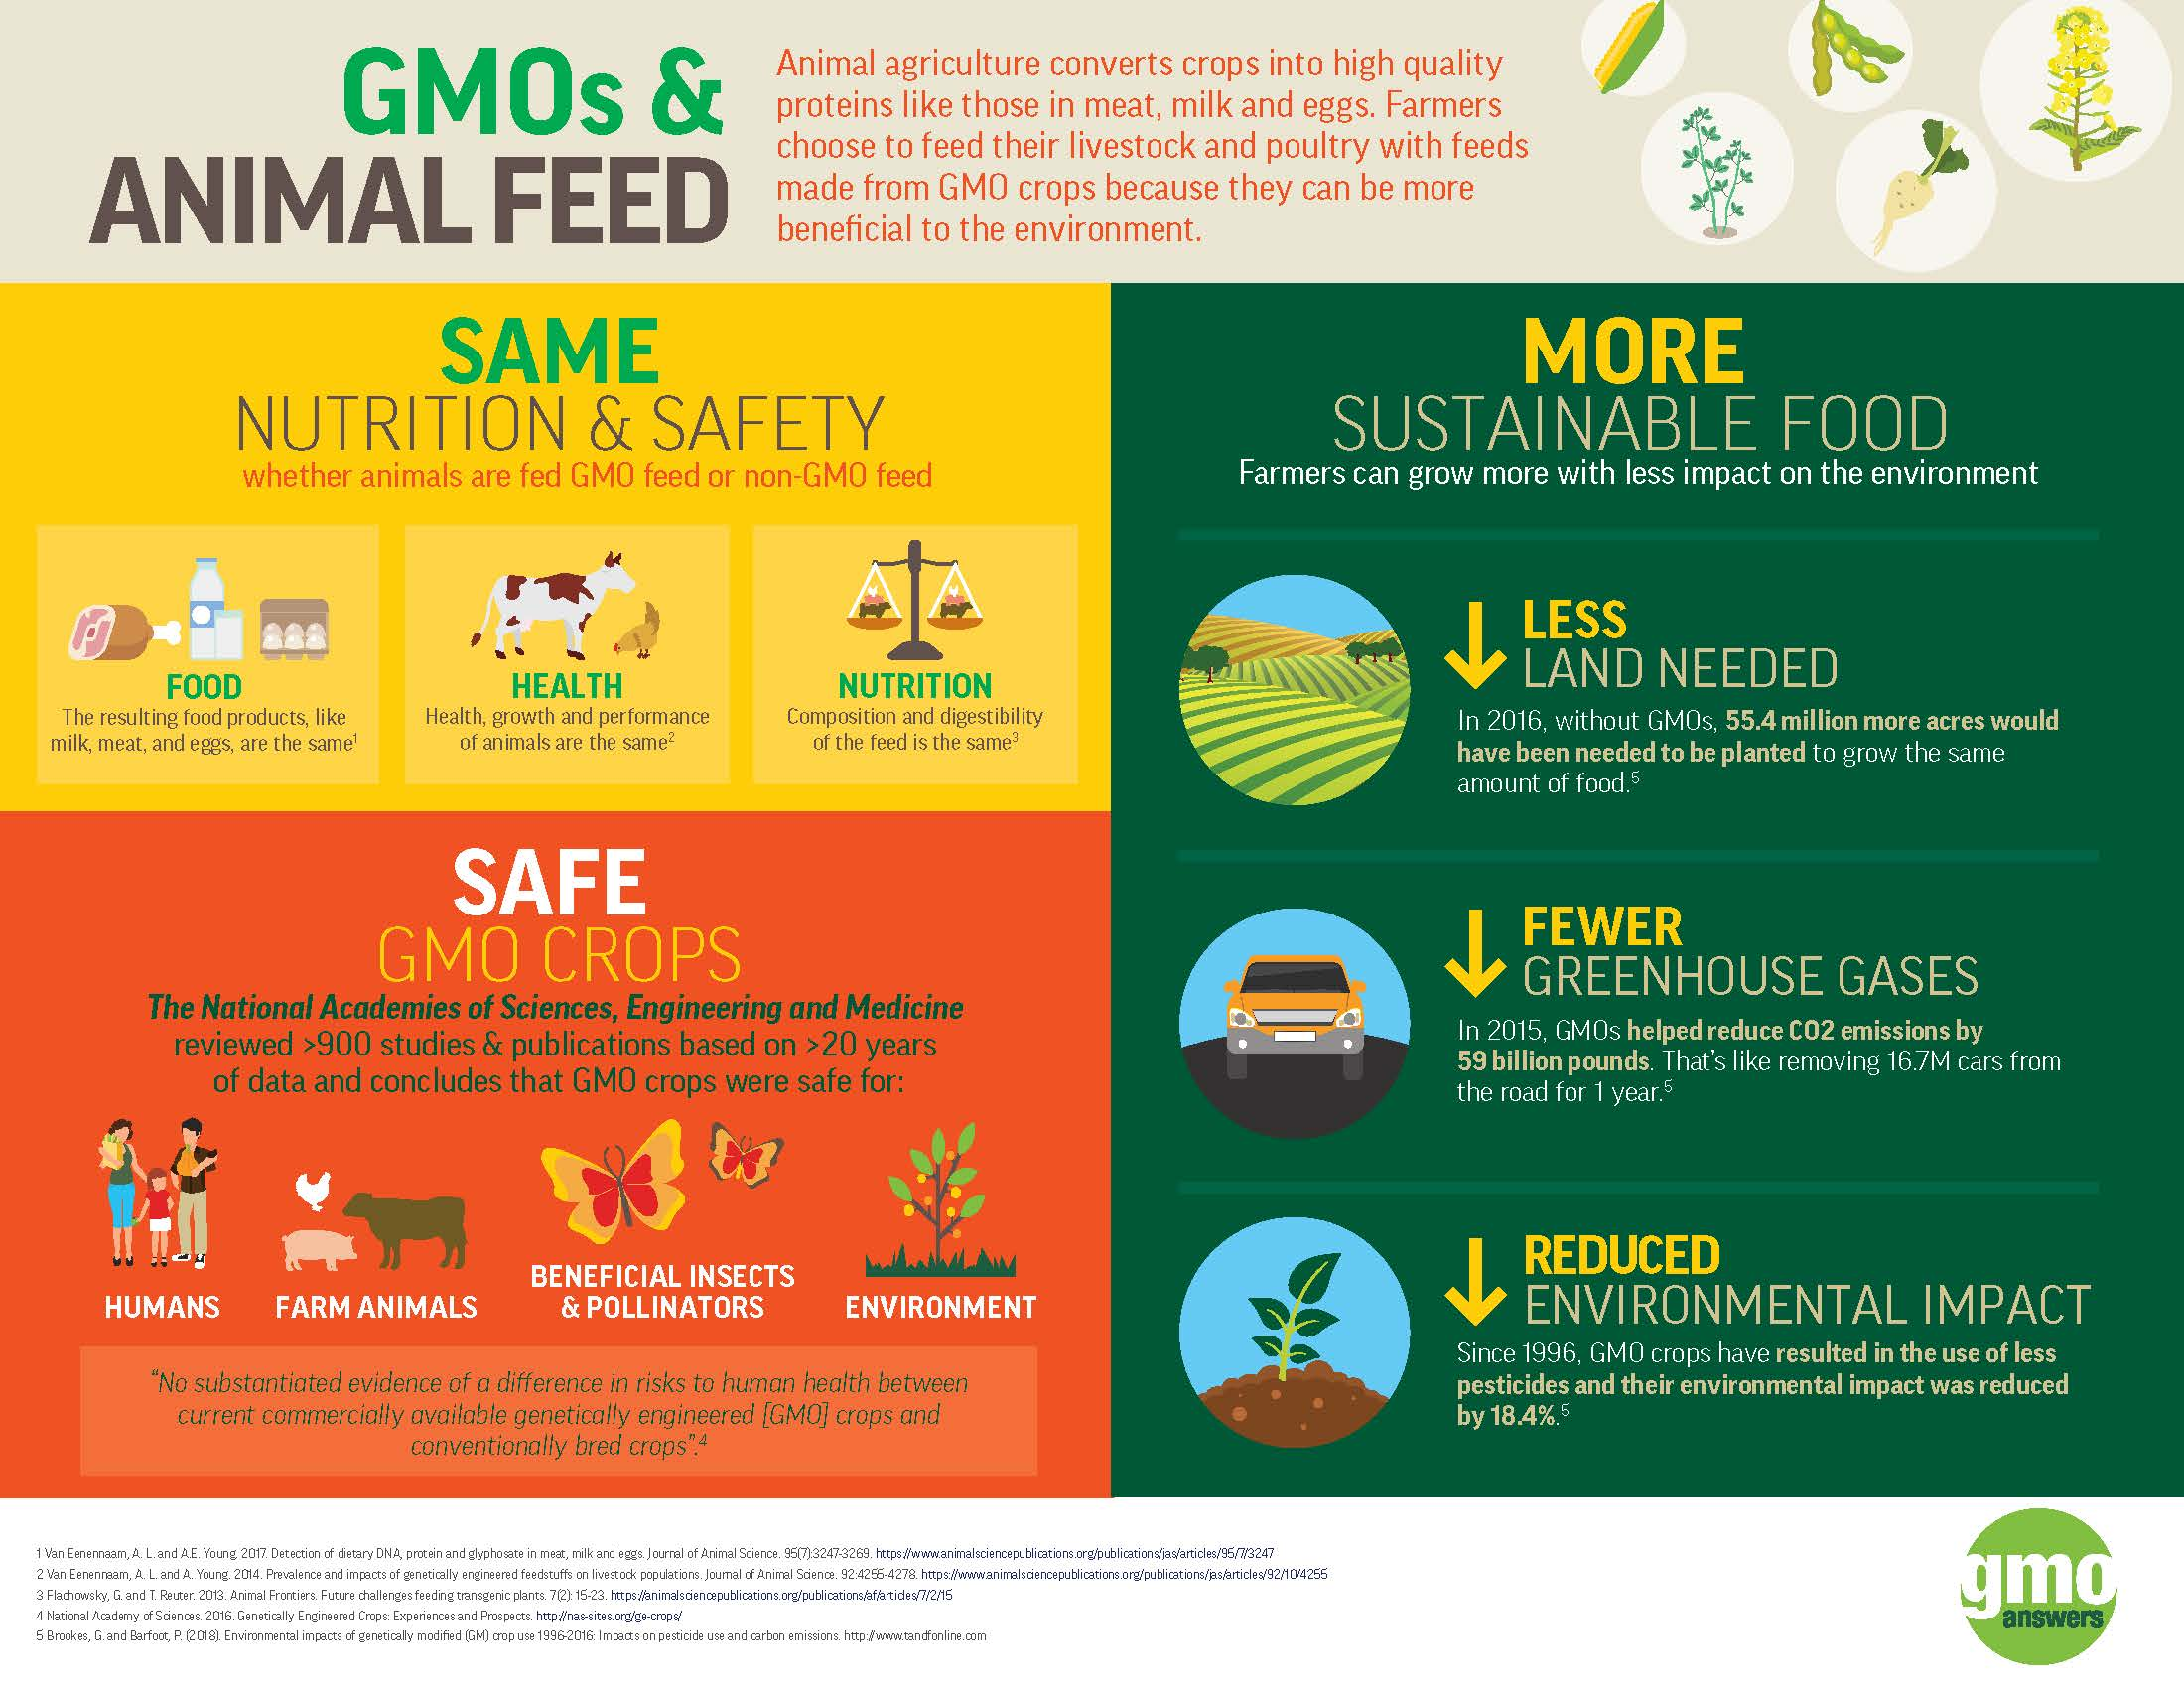 GMOs in animal feed are safe for animals and humans